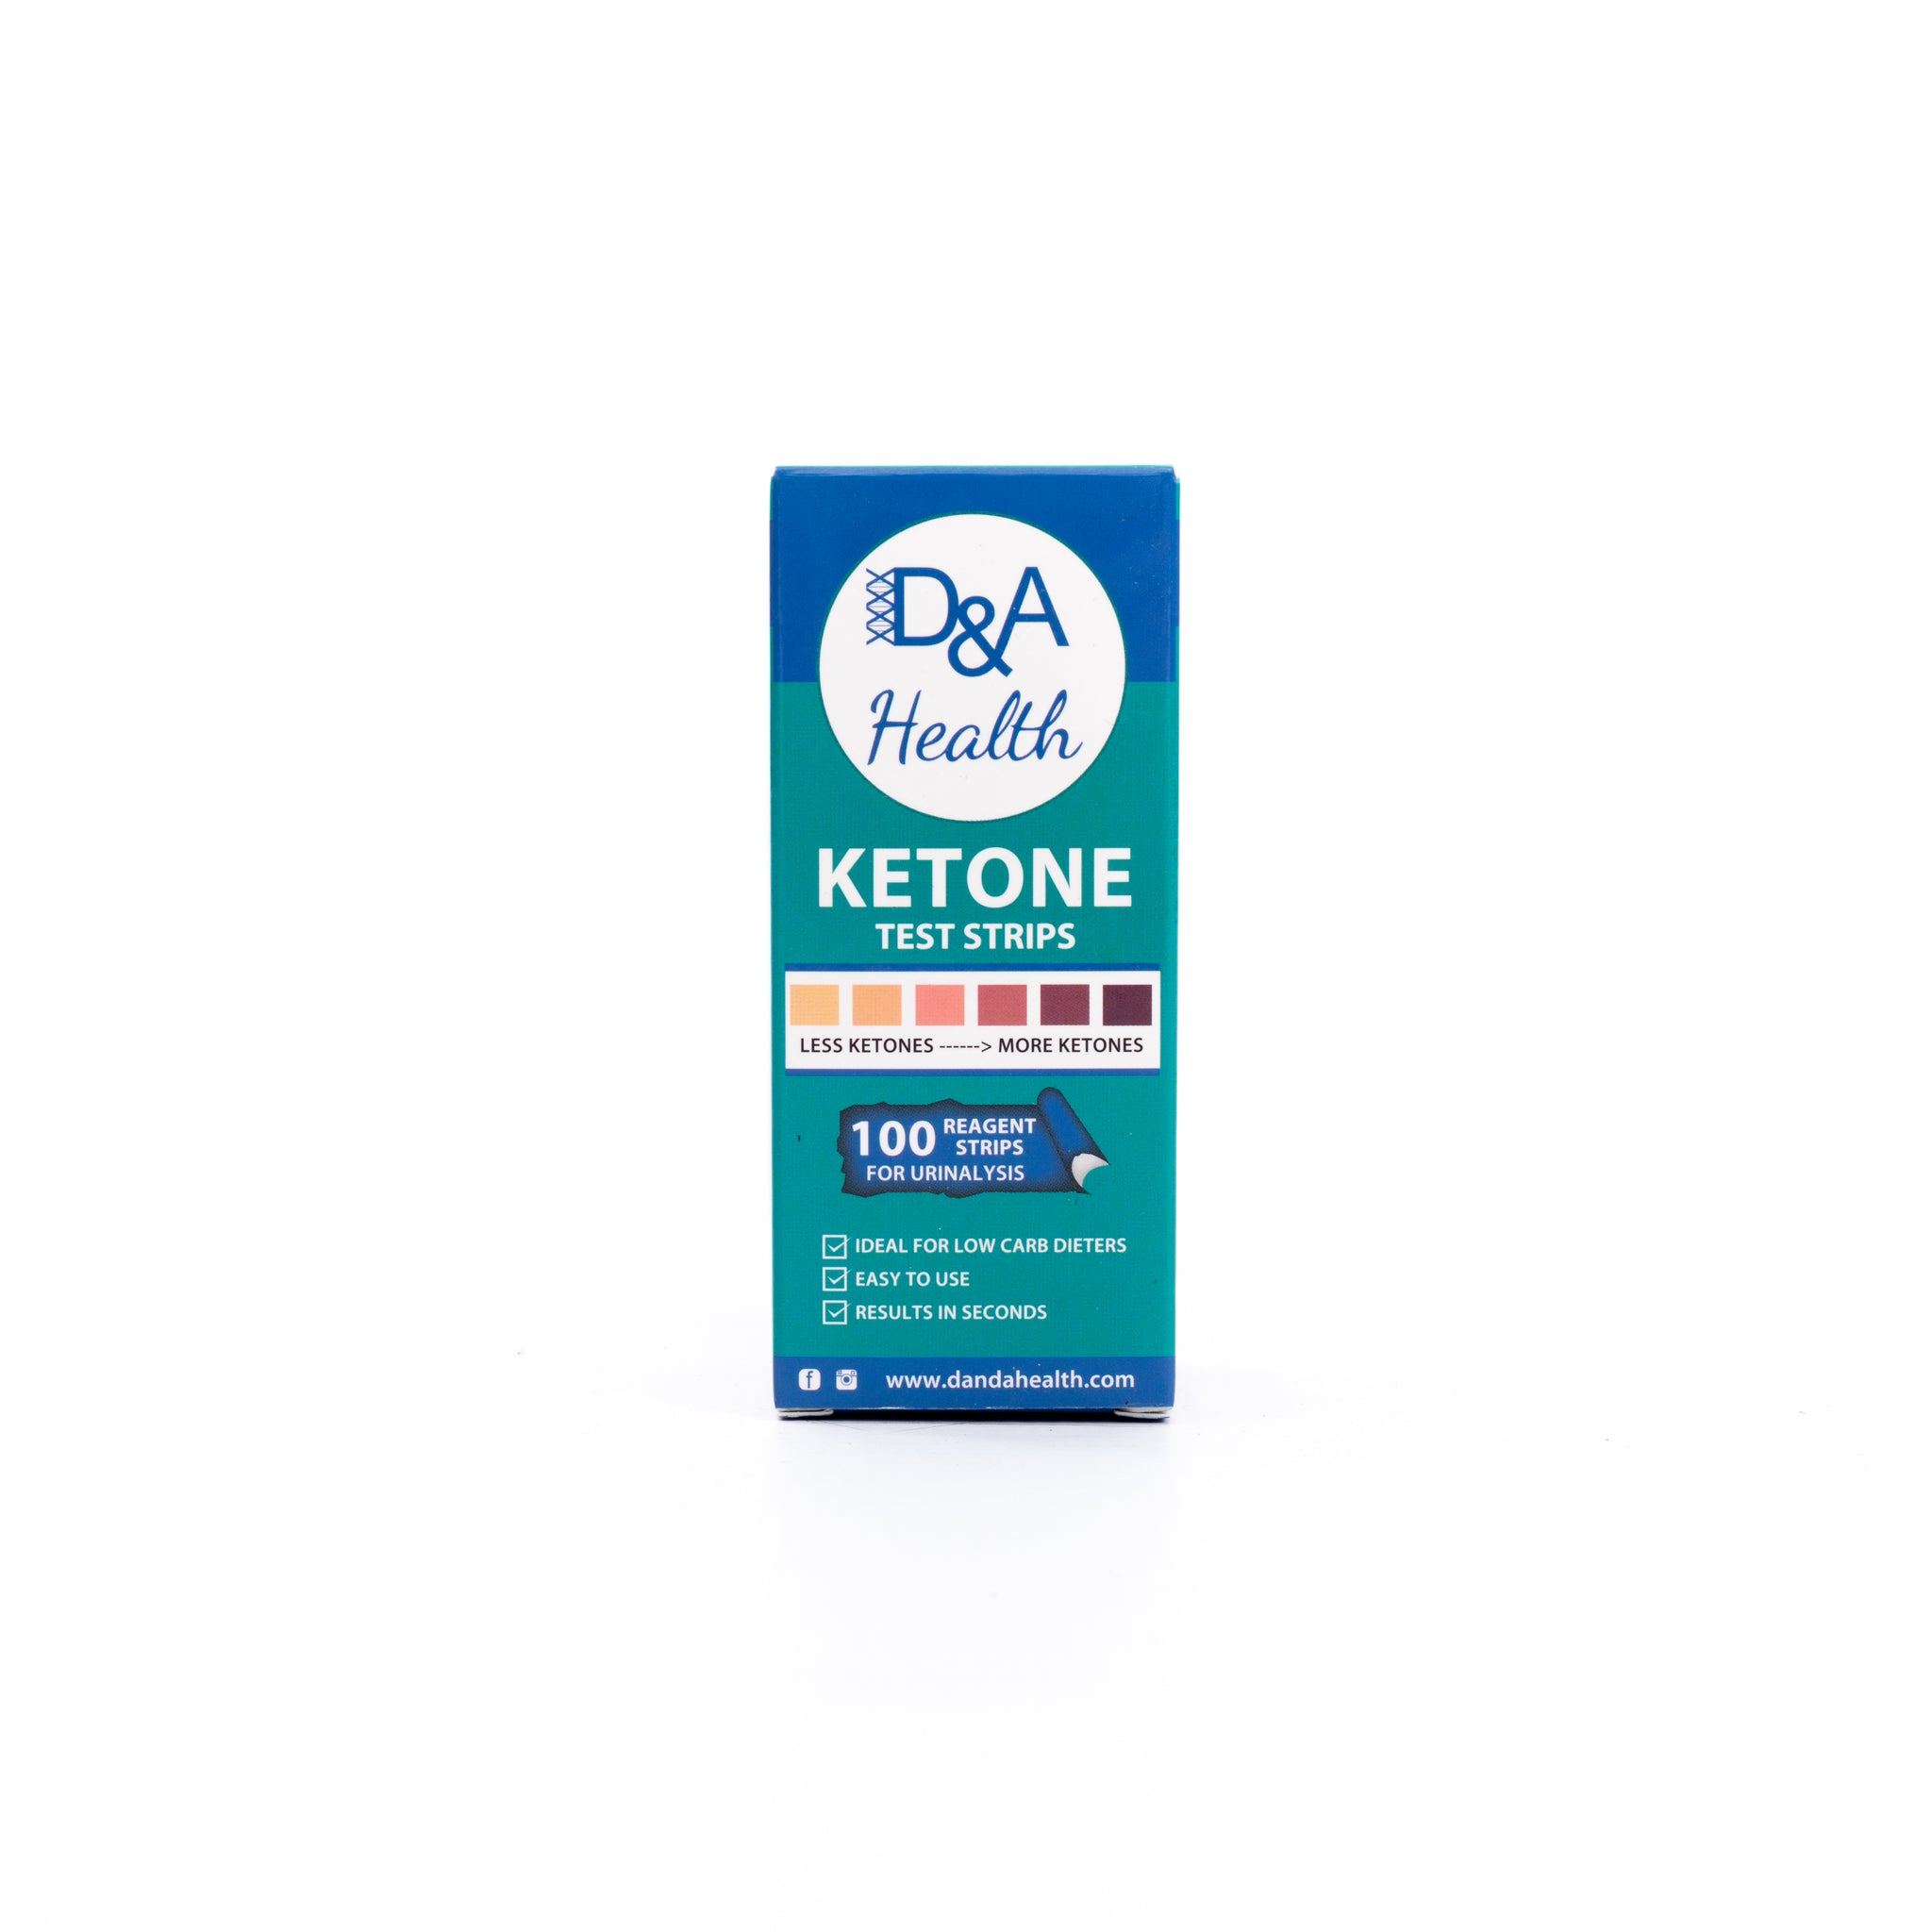 D&A HEALTH - KETONE URINE TEST STRIPS (100)